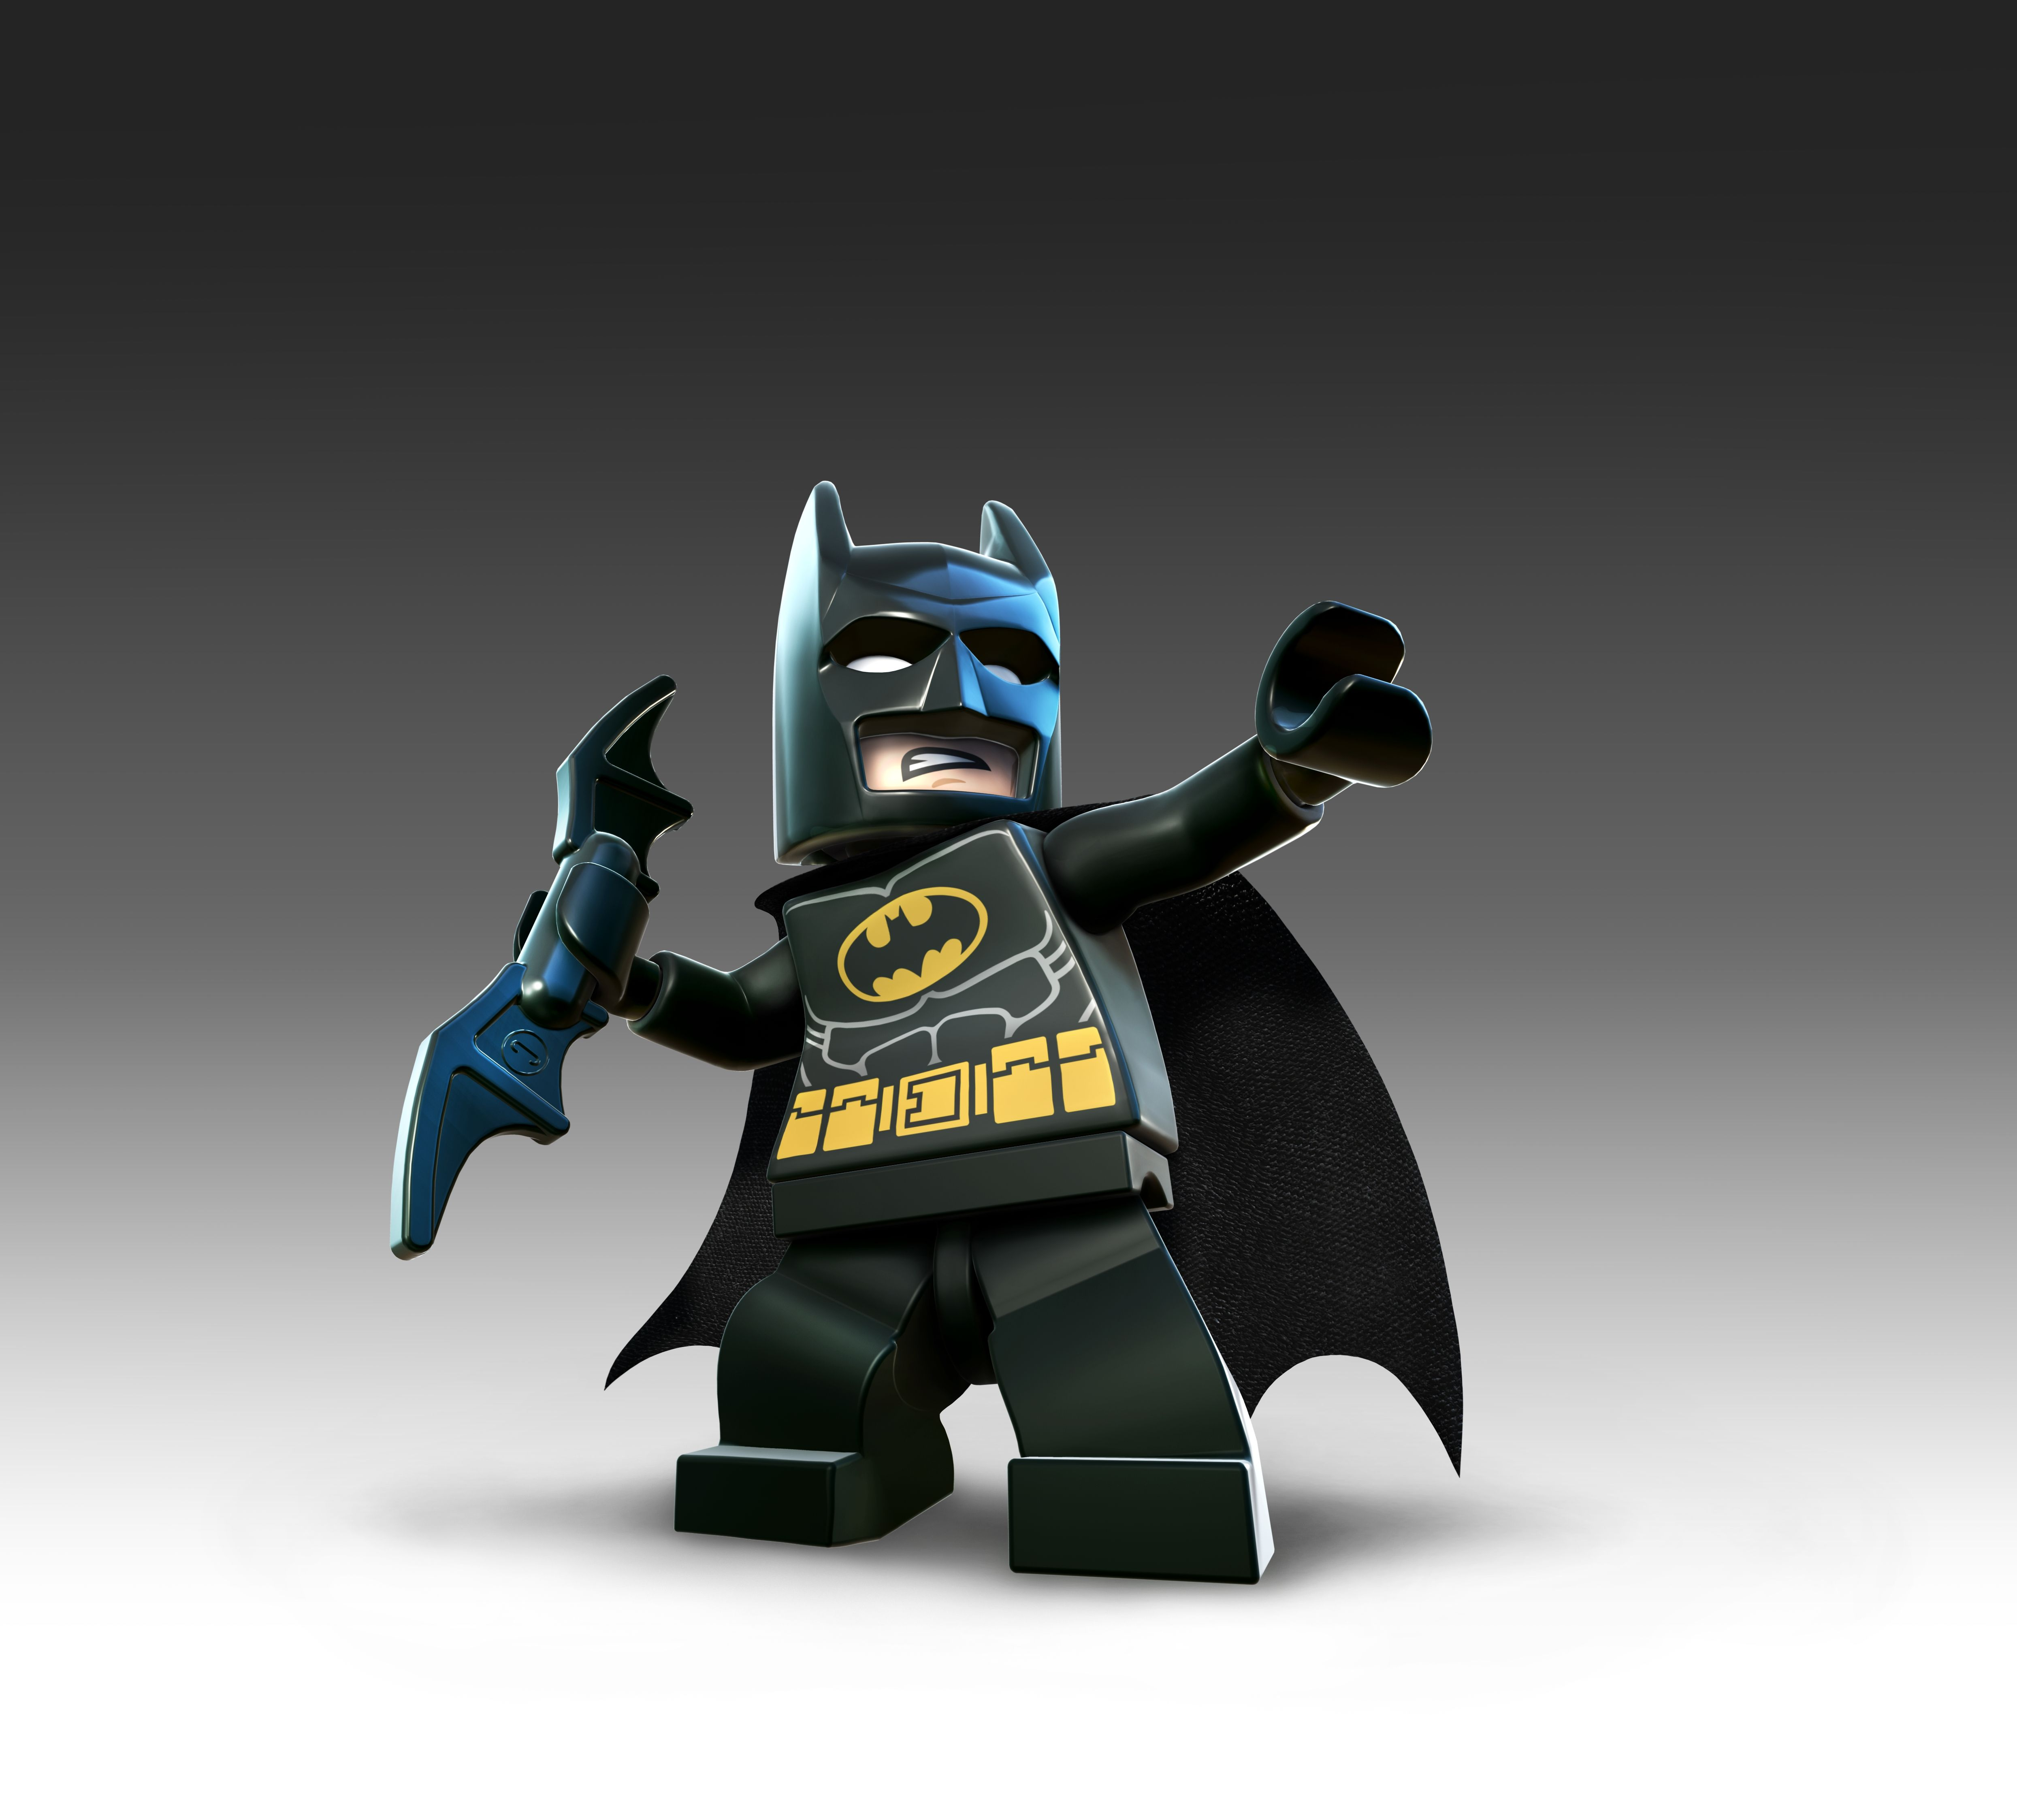 A New Trailer For Lego Batman 2 Dc Super Heroes Has Revealed That It Will Feature Talking Minifigures Lego Batman Lego Batman Movie Lego Batman 2